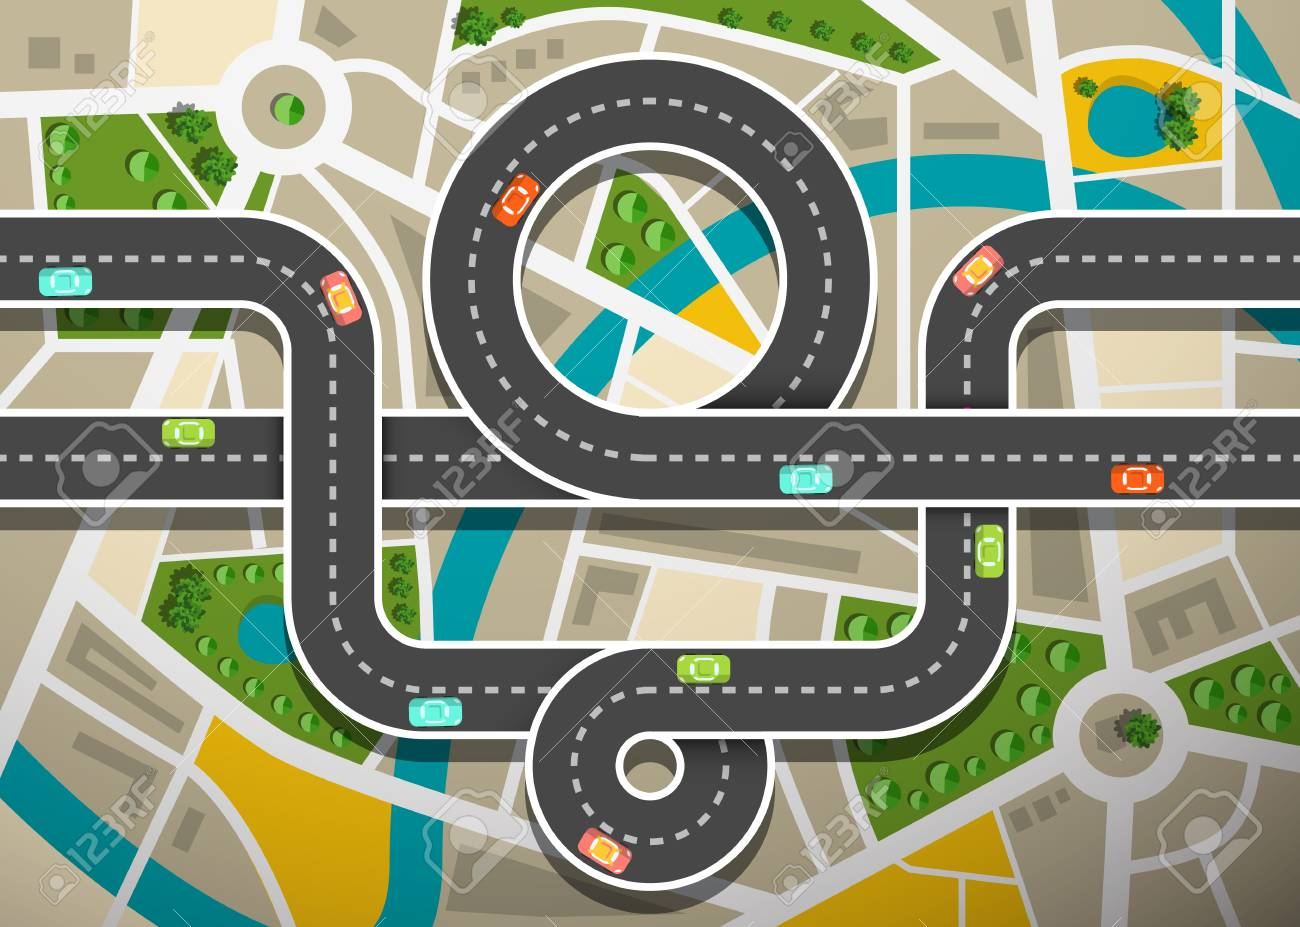 Road Map Aerial View with Cars on Highway and City Streets - 125536057